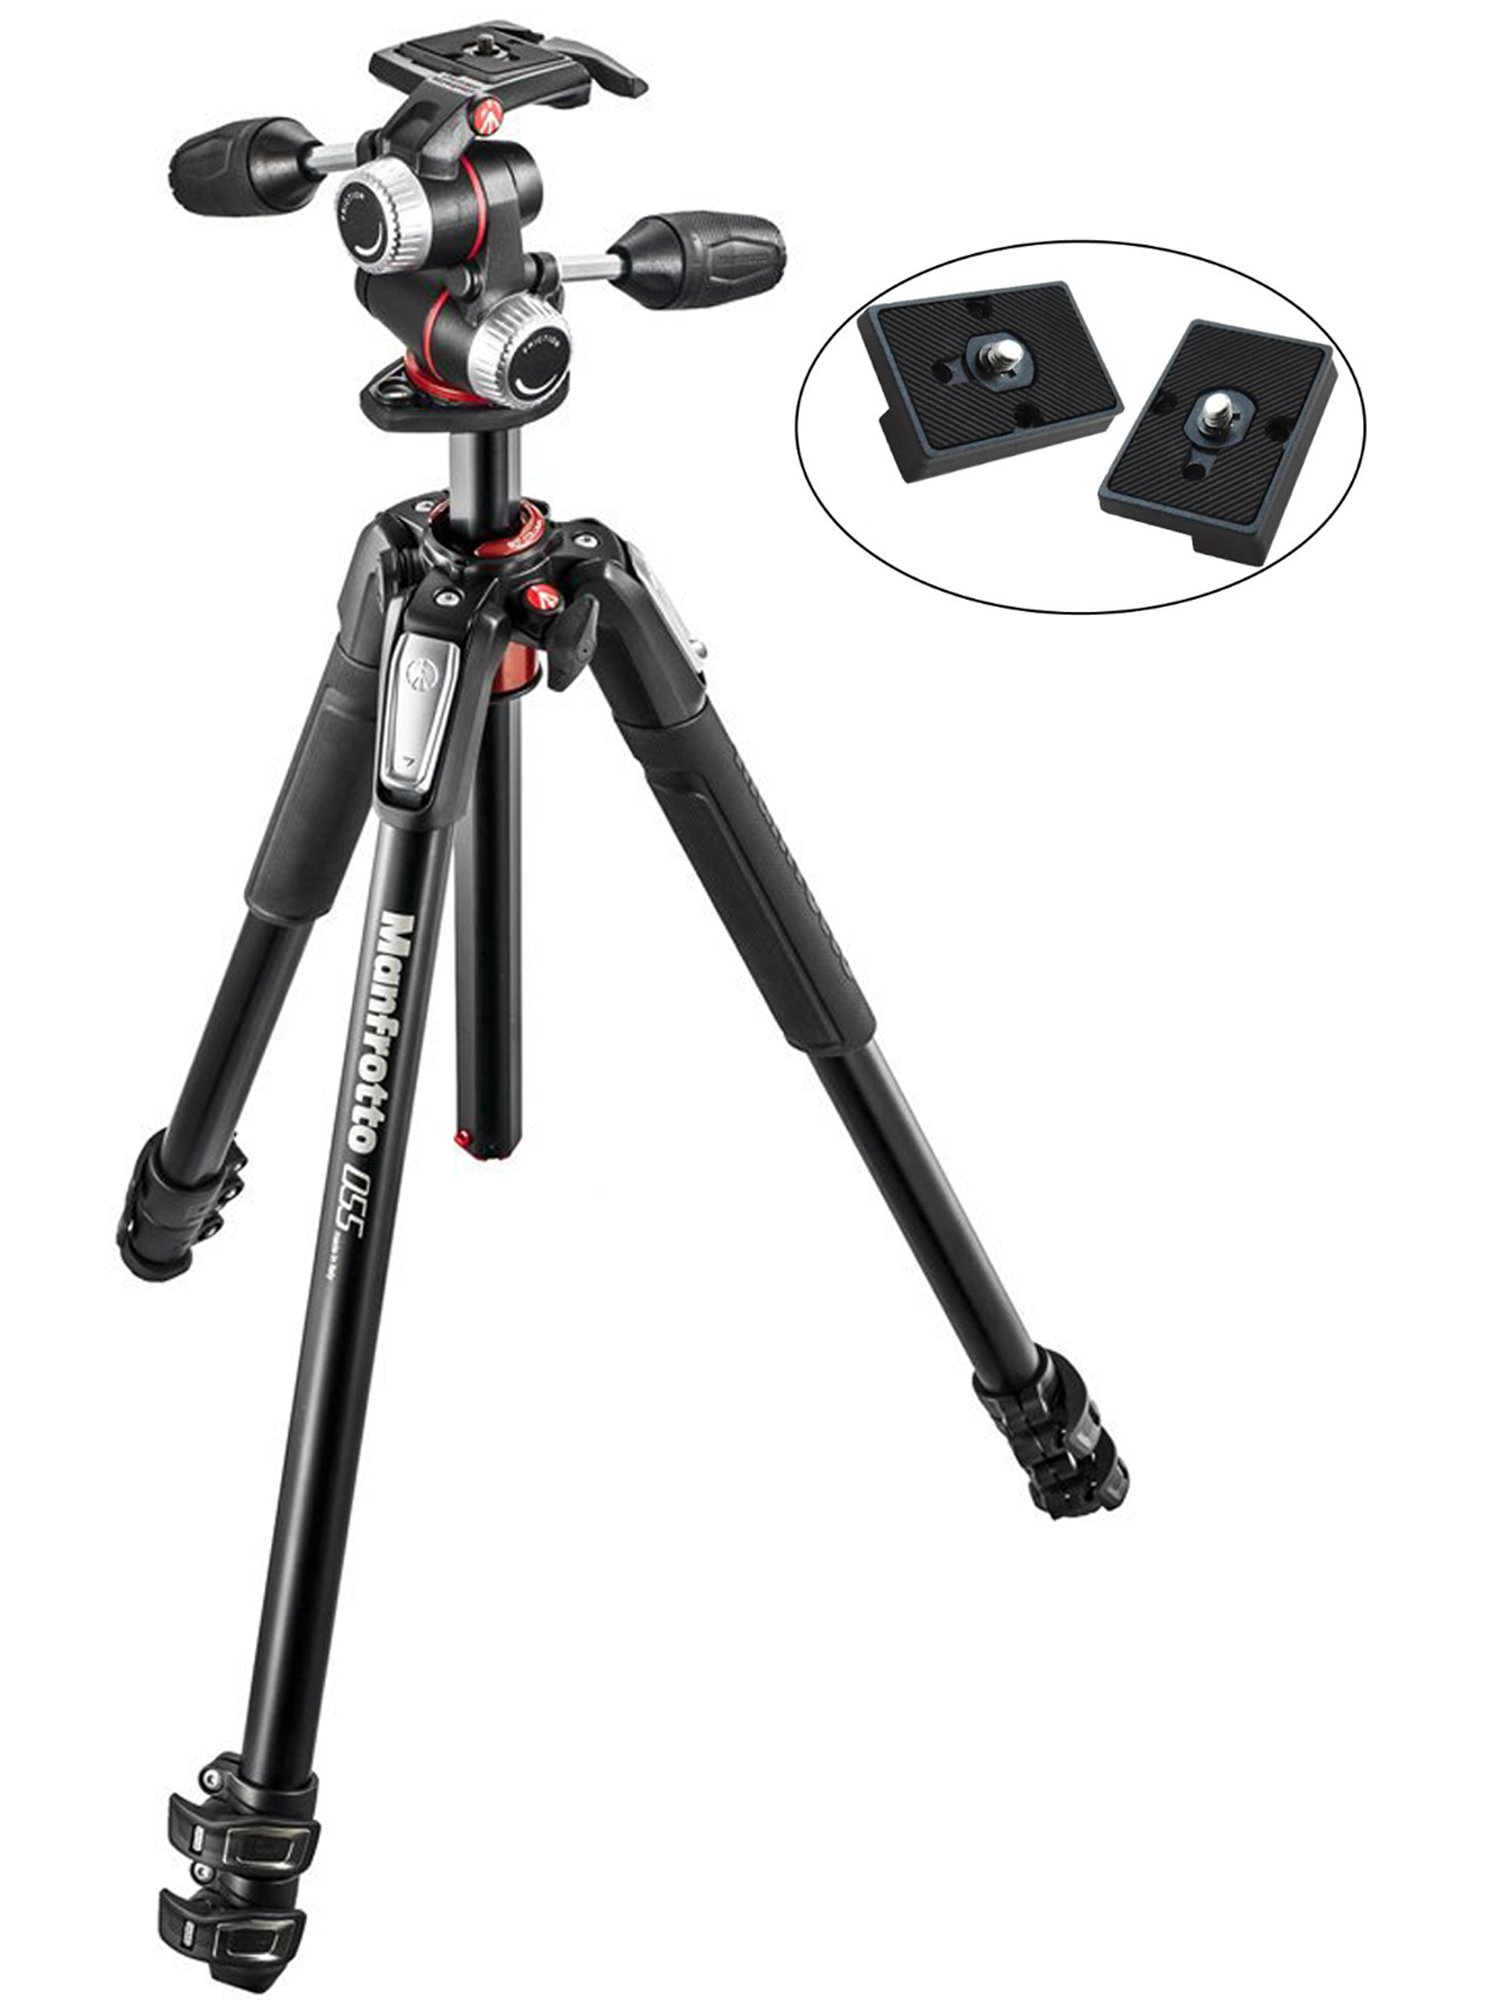 Manfrotto MK055XPRO3-3W 055 Kit Aluminium 3-Section Horizontal Column Tripod with 3-Way Head and Two ZAYKIR Quick Release Plates for the RC2 Rapid Connect Adapter